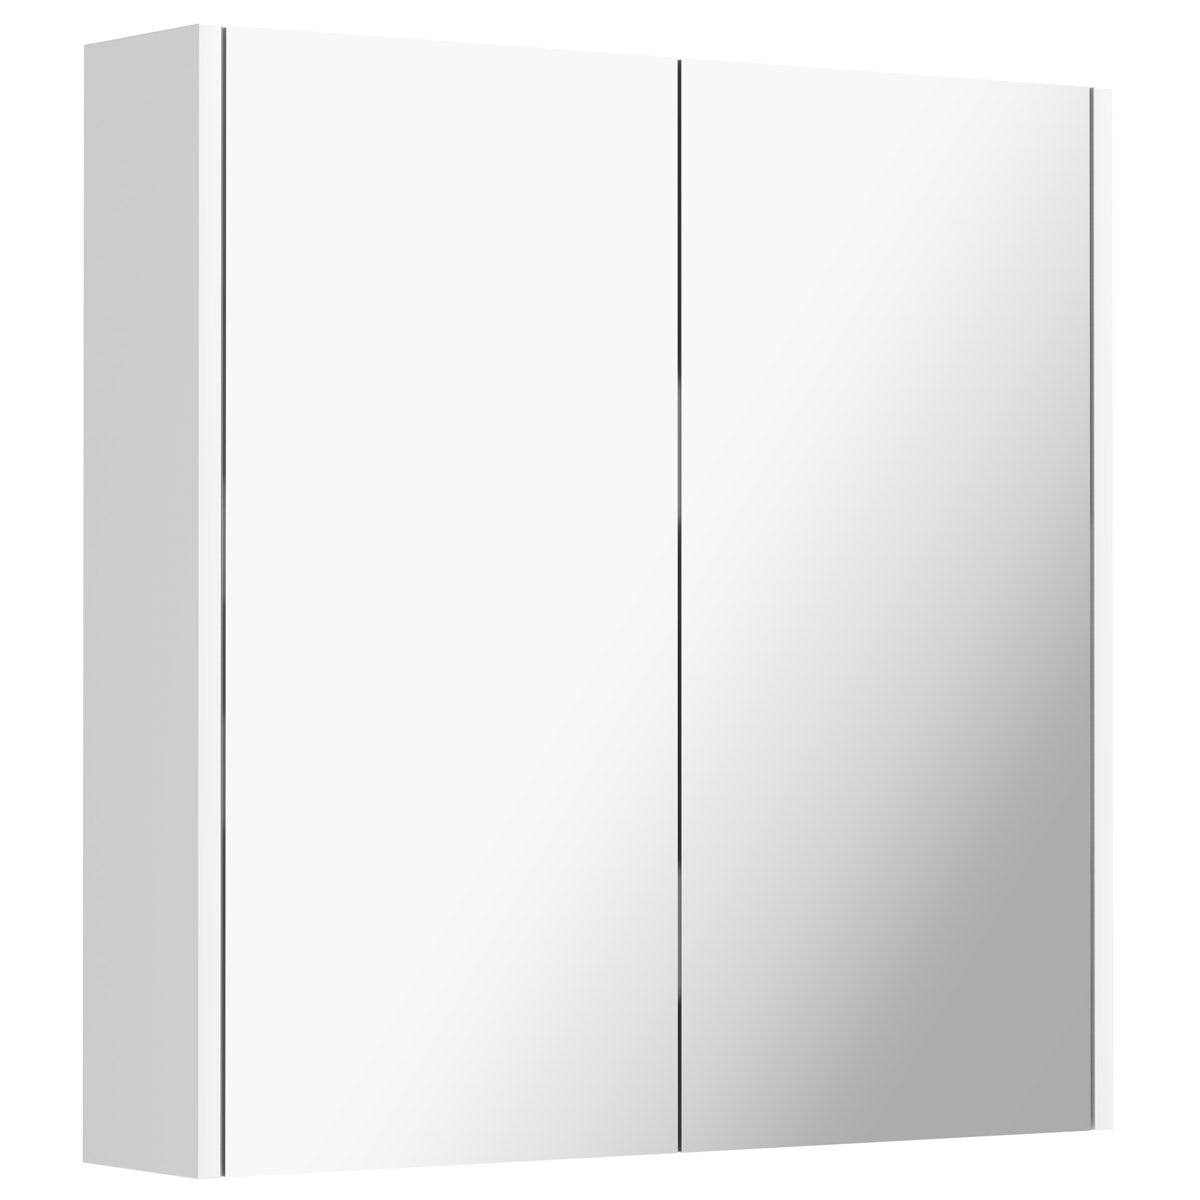 Mode Cooper white mirror cabinet 650mm